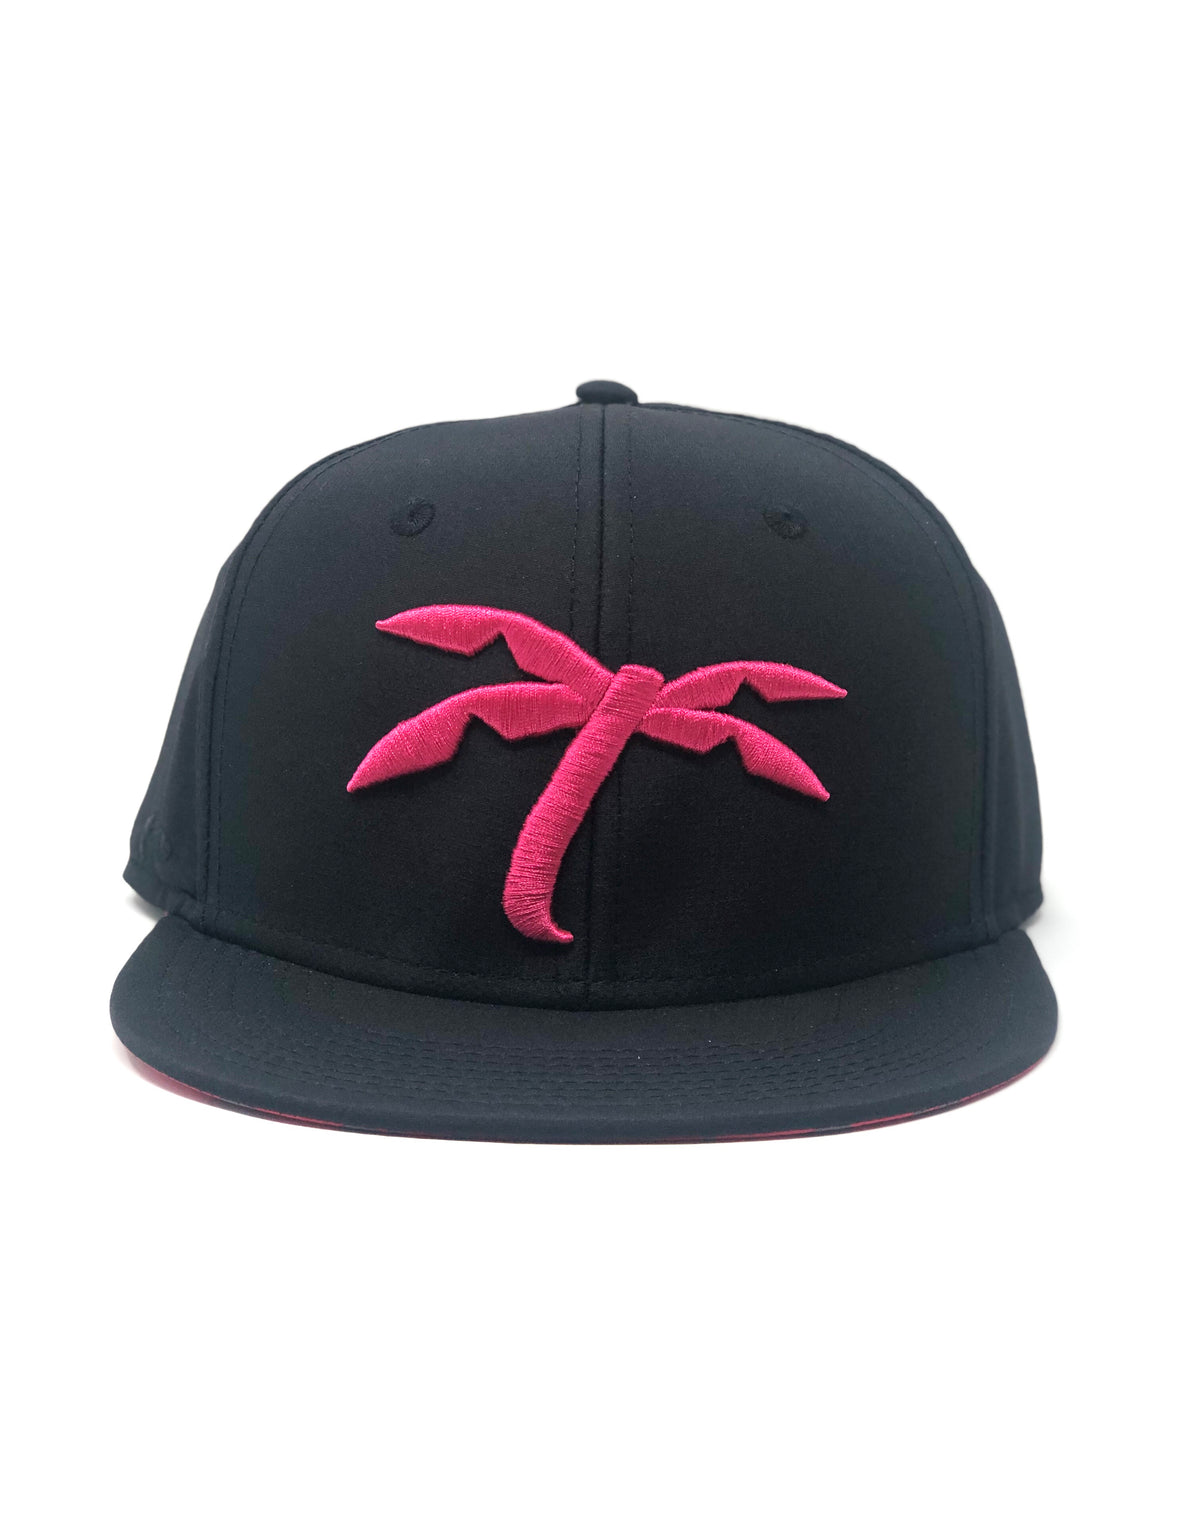 Vice Palm Tree snapback